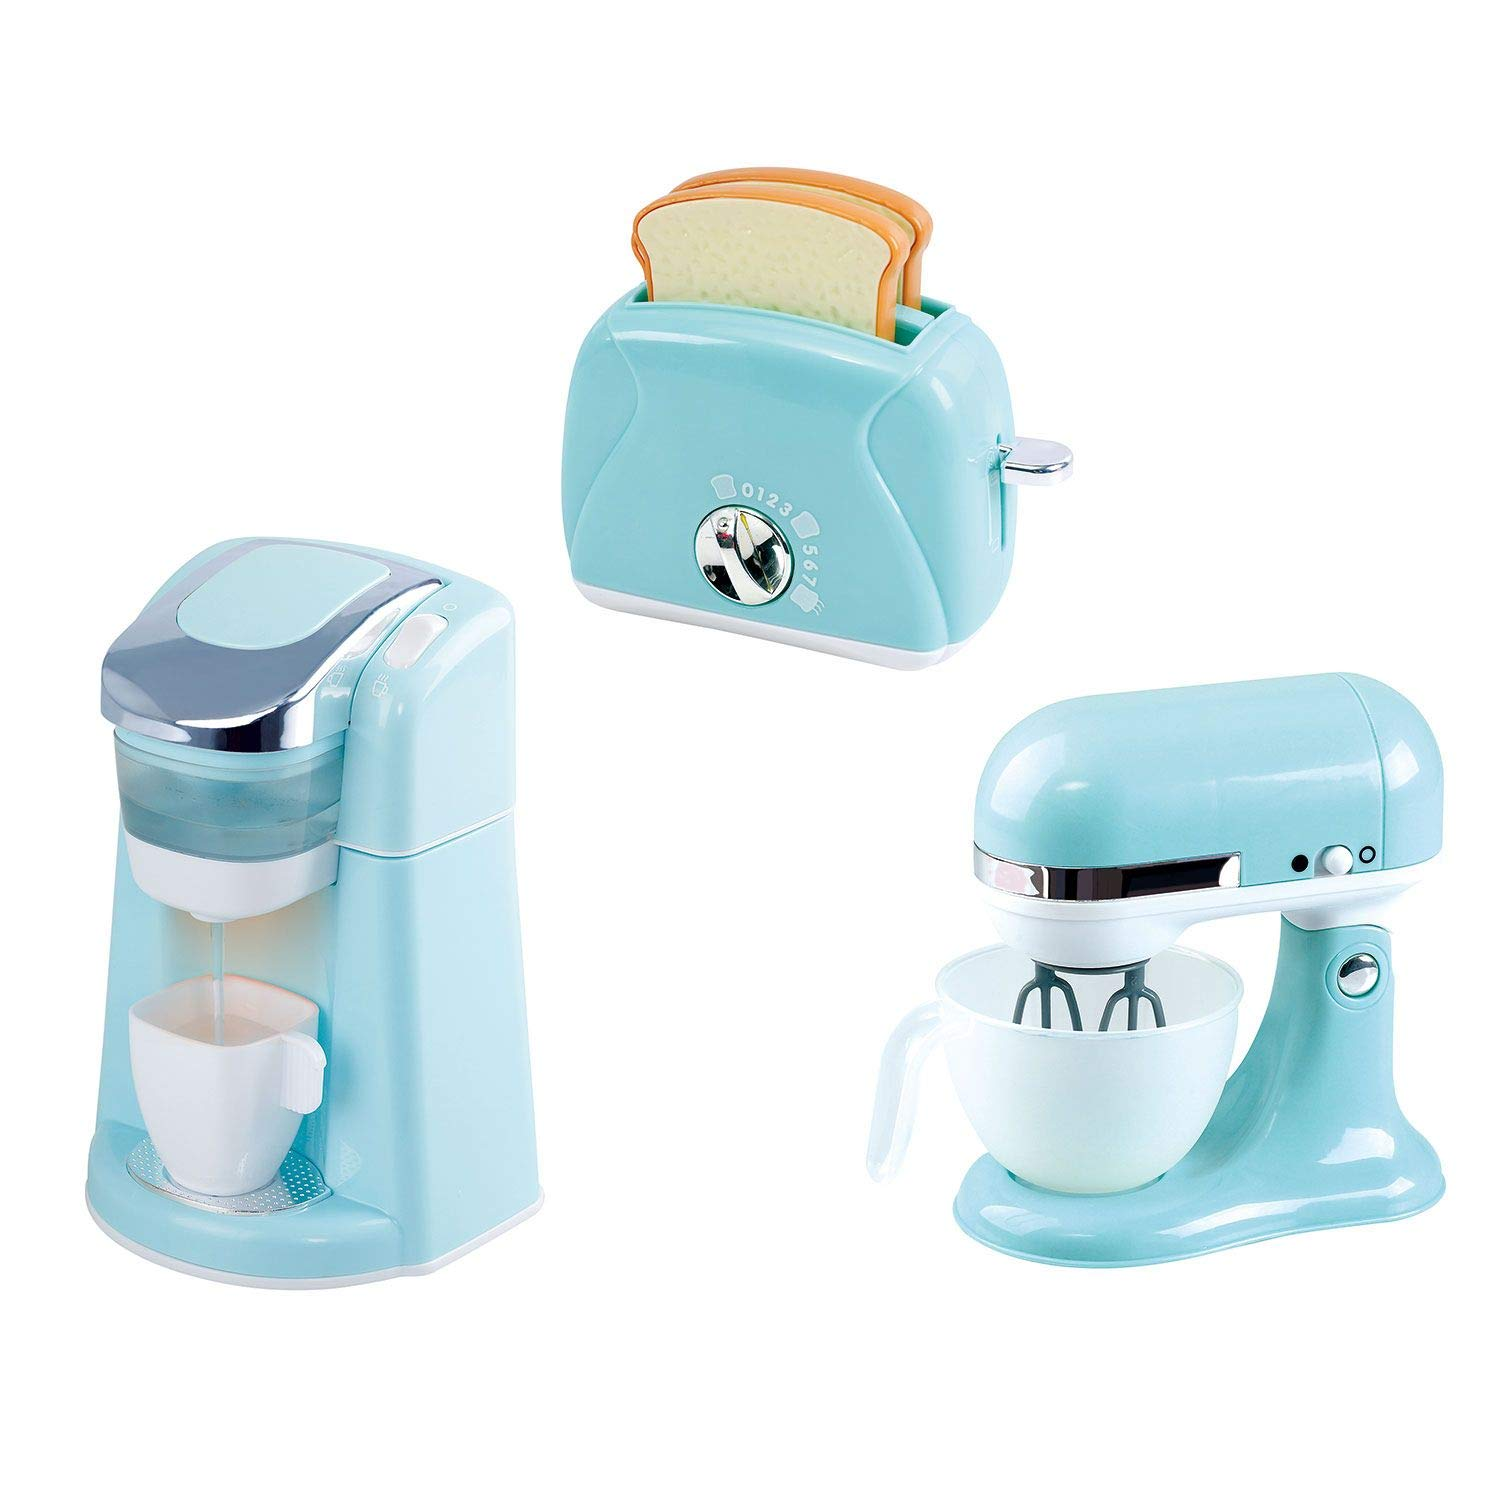 Play Gourmet Kitchen Appliances by : By PlayGo